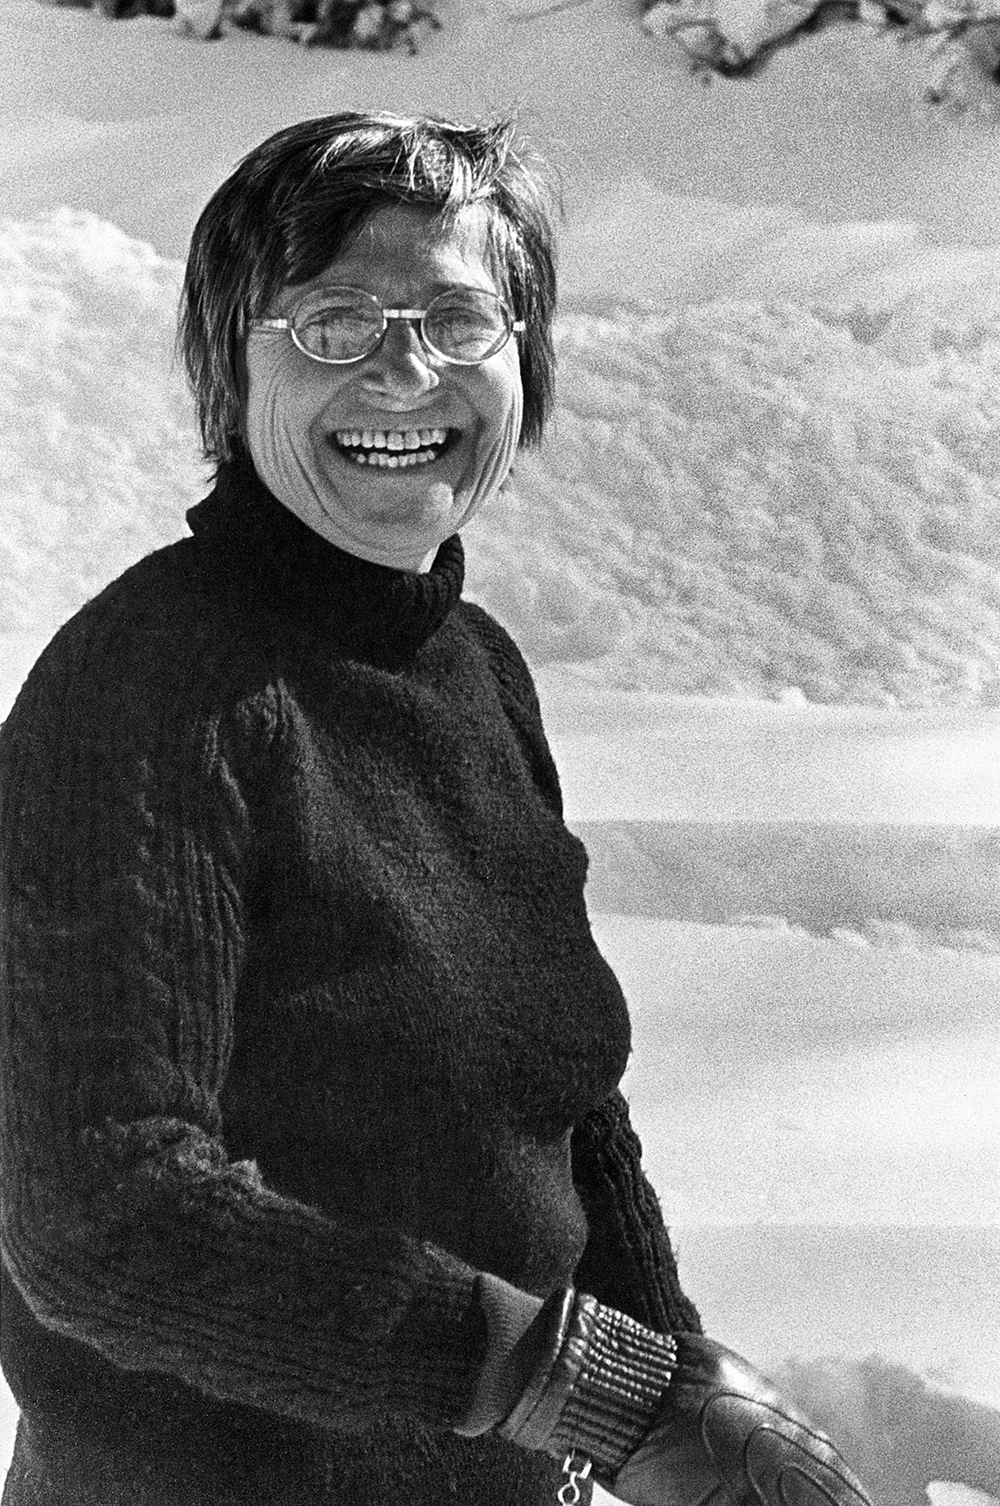 Goodwin - Anne in snow.jpg